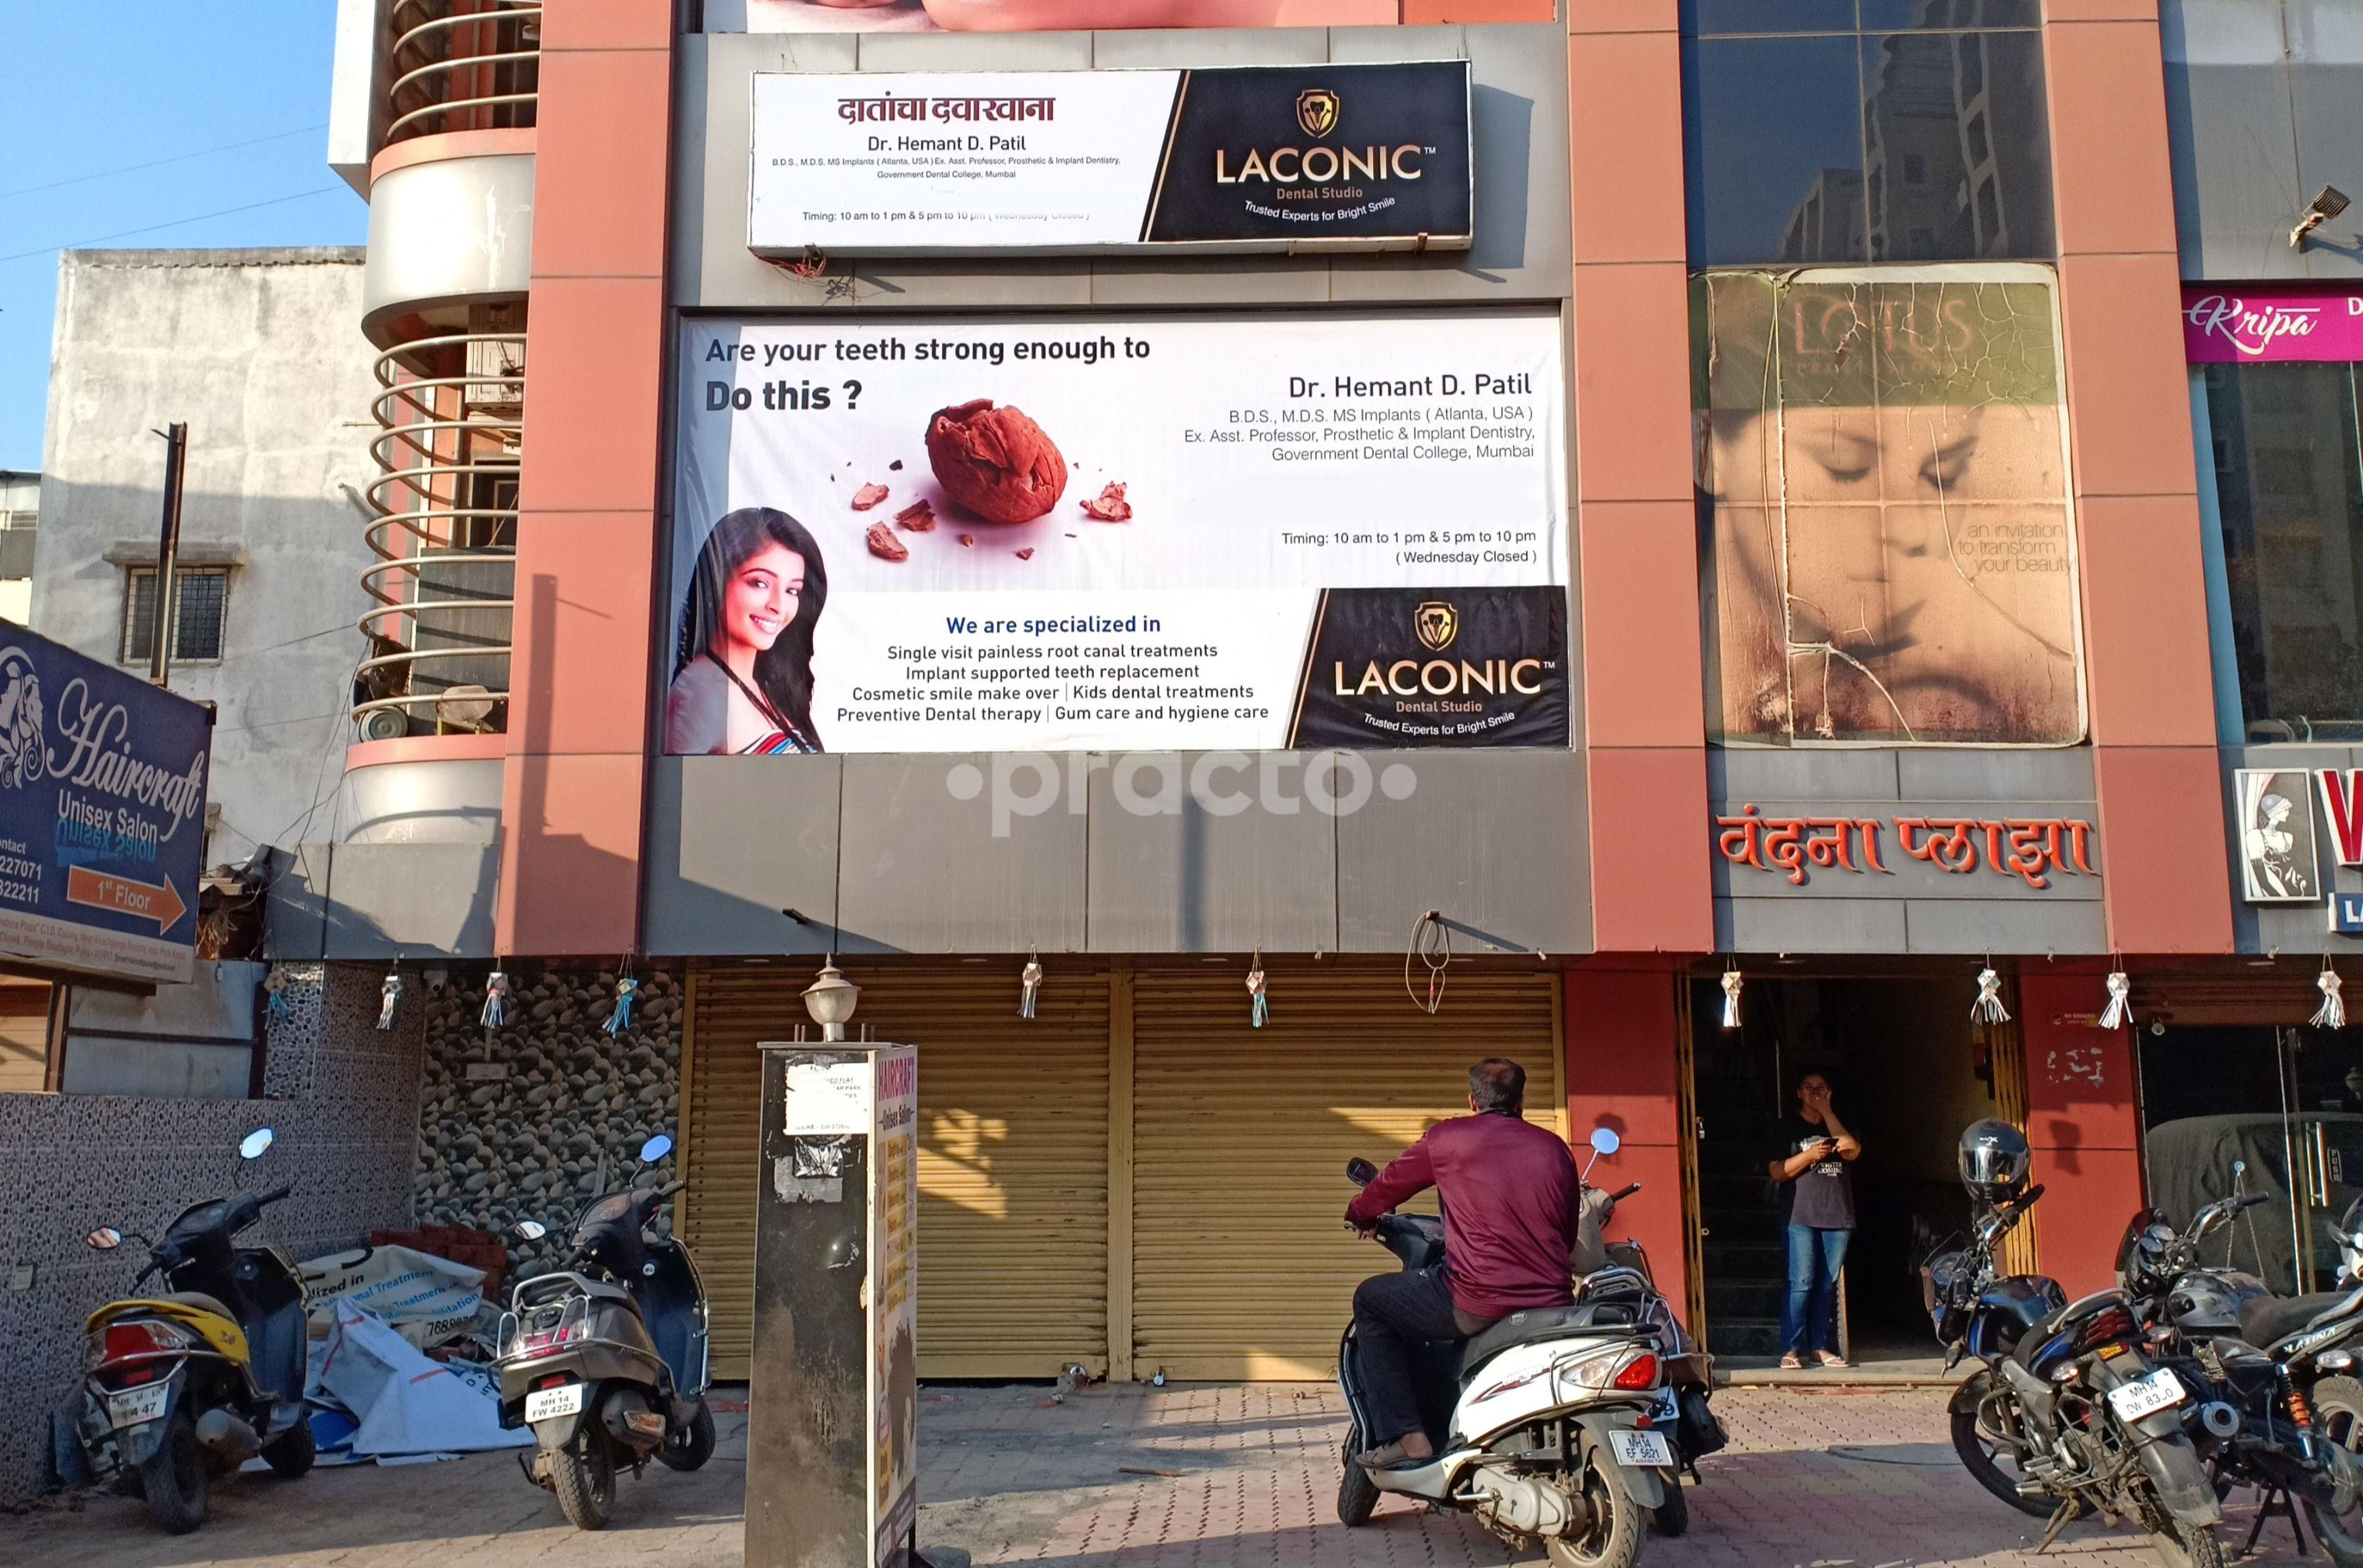 Best Clinics in Pune - Book Appointment, View Reviews